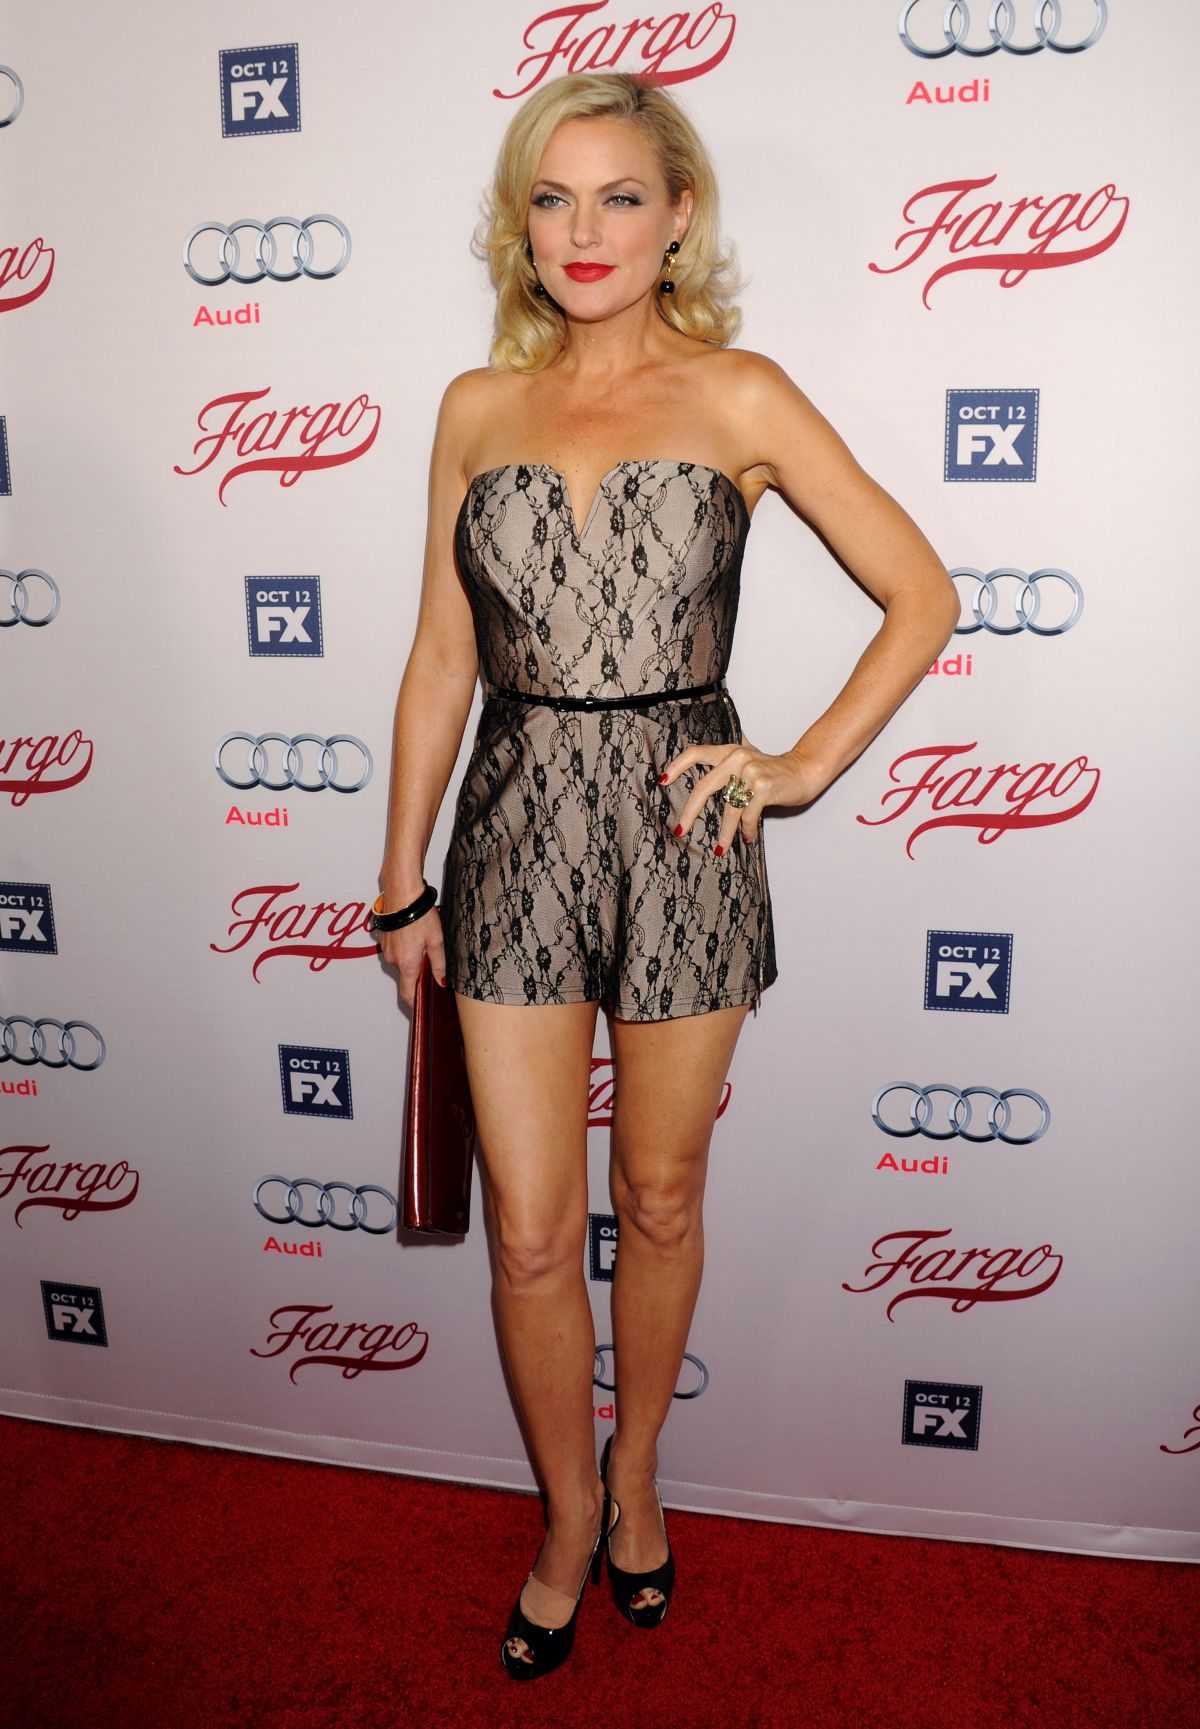 ELAINE HENDRIX at Fargo Season 2 Premiere in Hollywood 10/07/2015